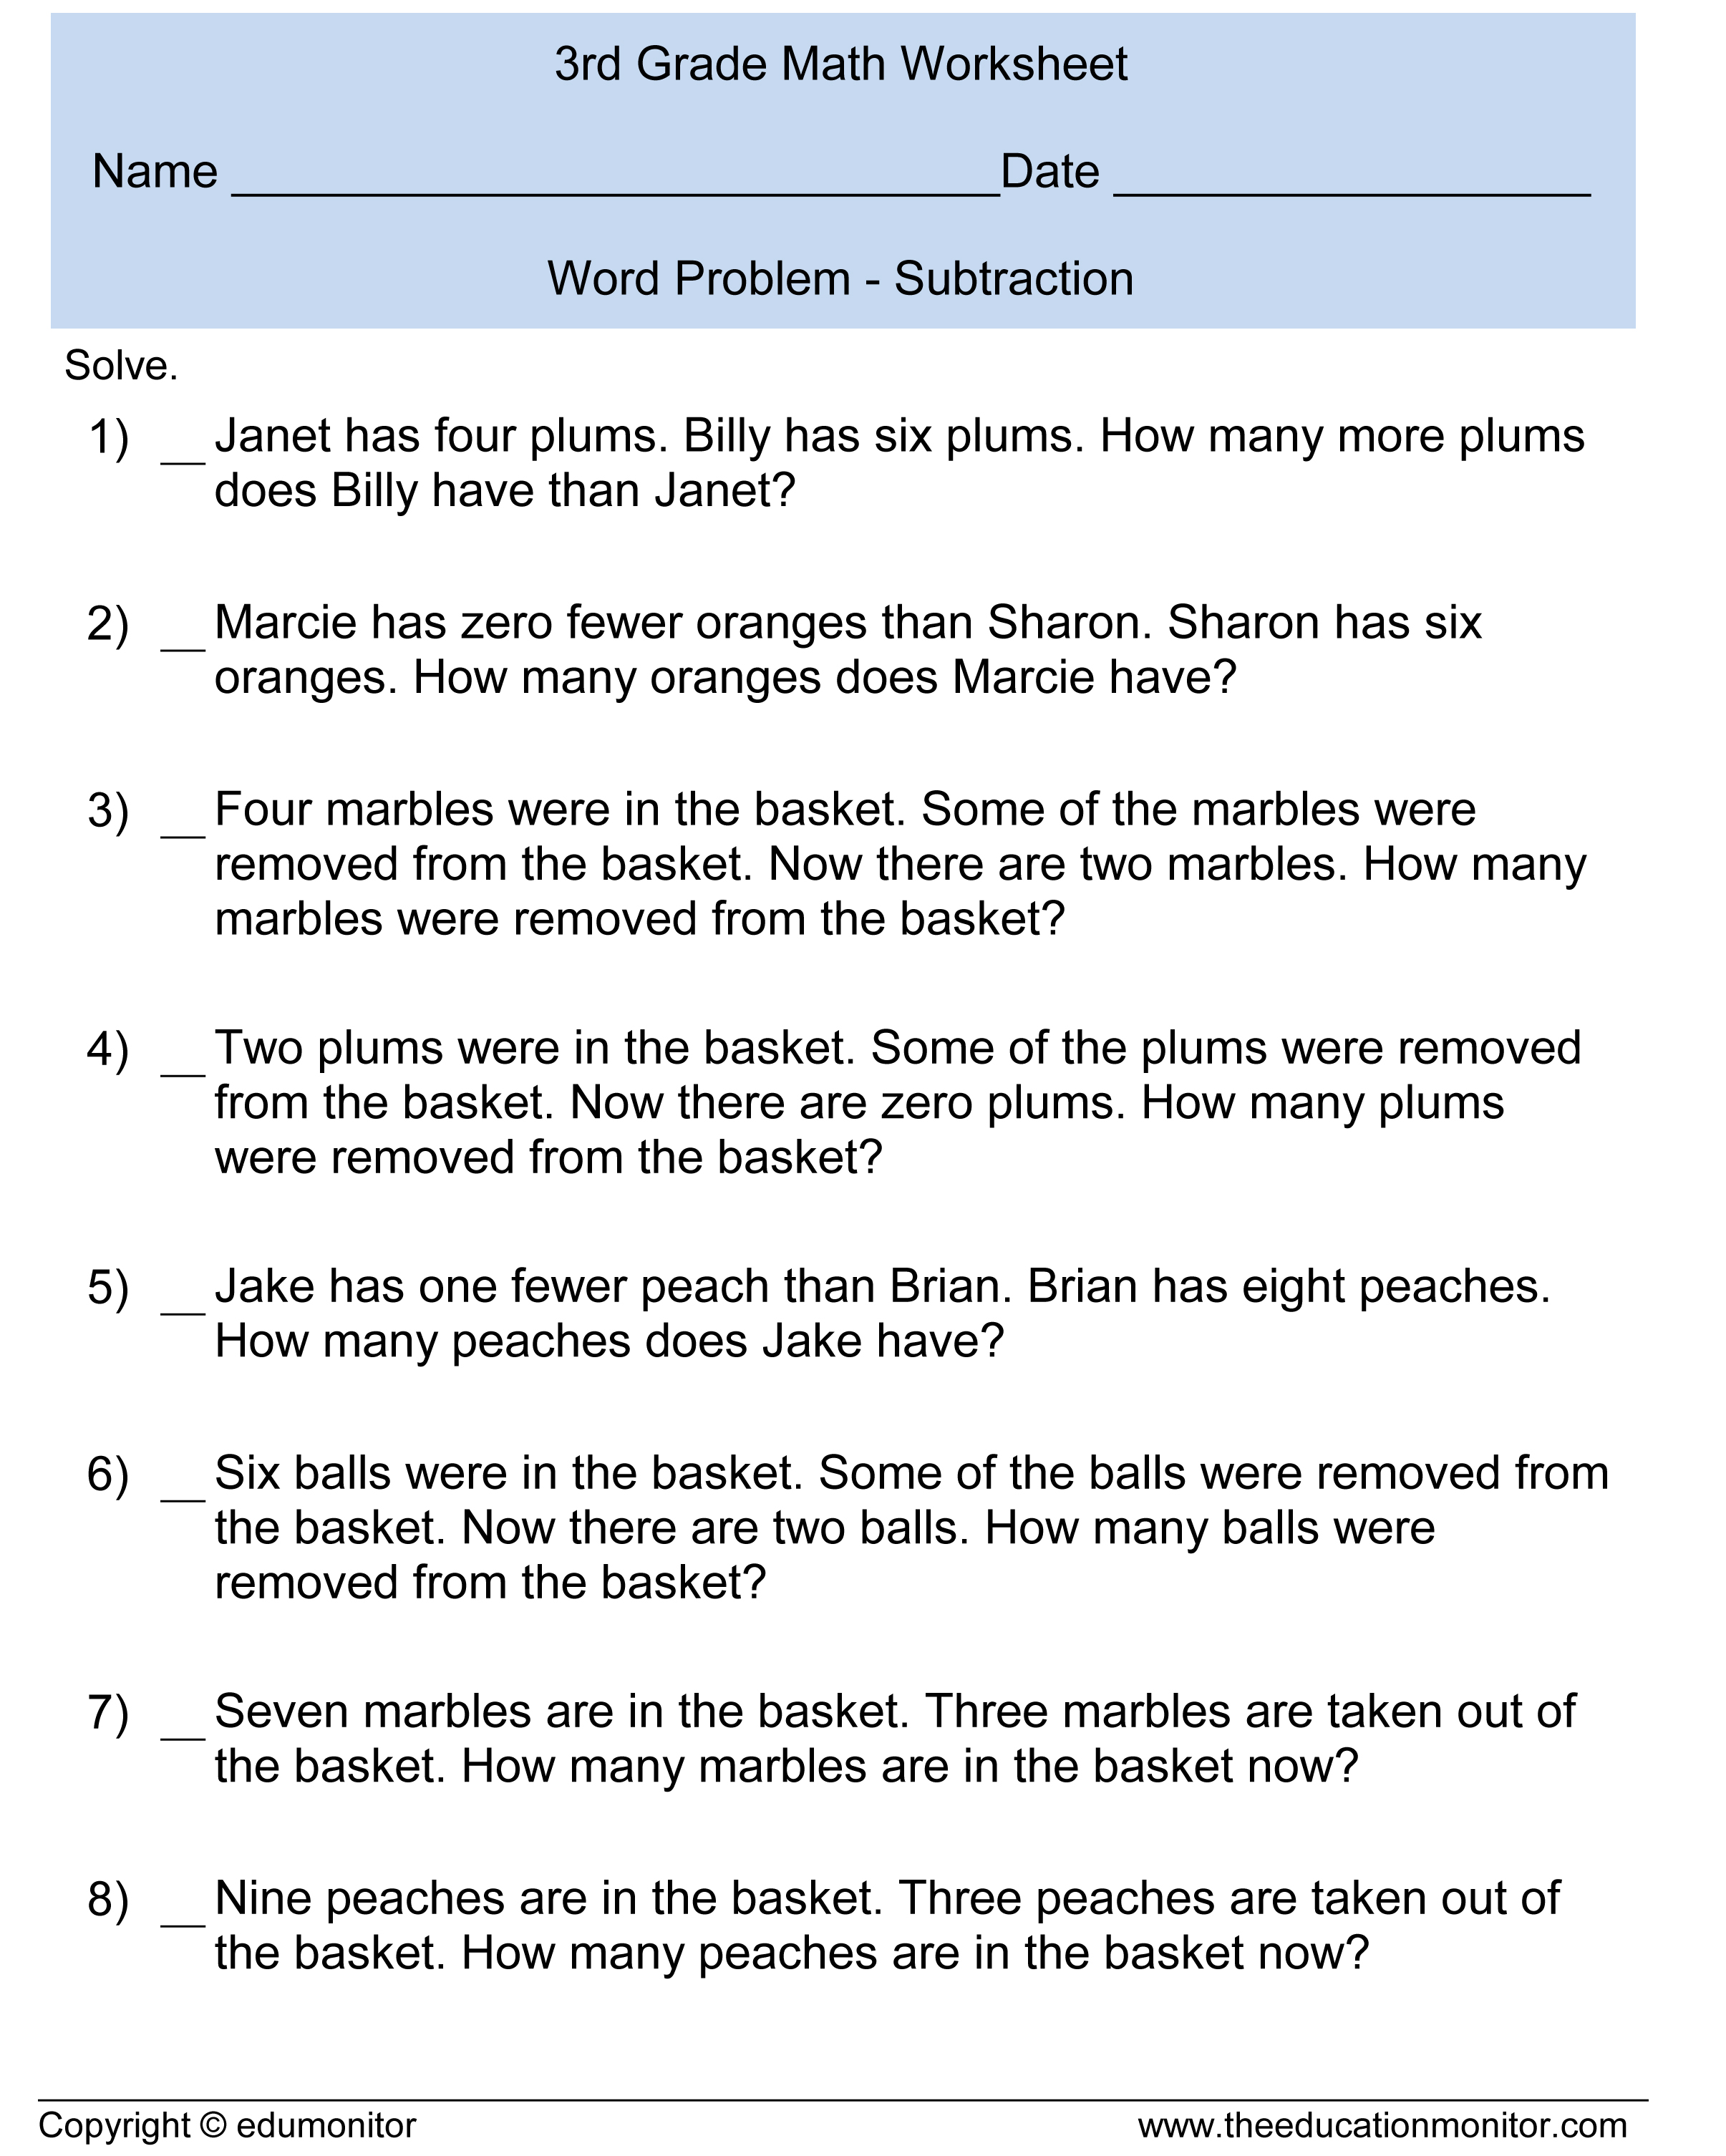 Addition And Subtraction Word Problems Worksheets For Kindergarten – Free Subtraction Worksheets for 3rd Grade